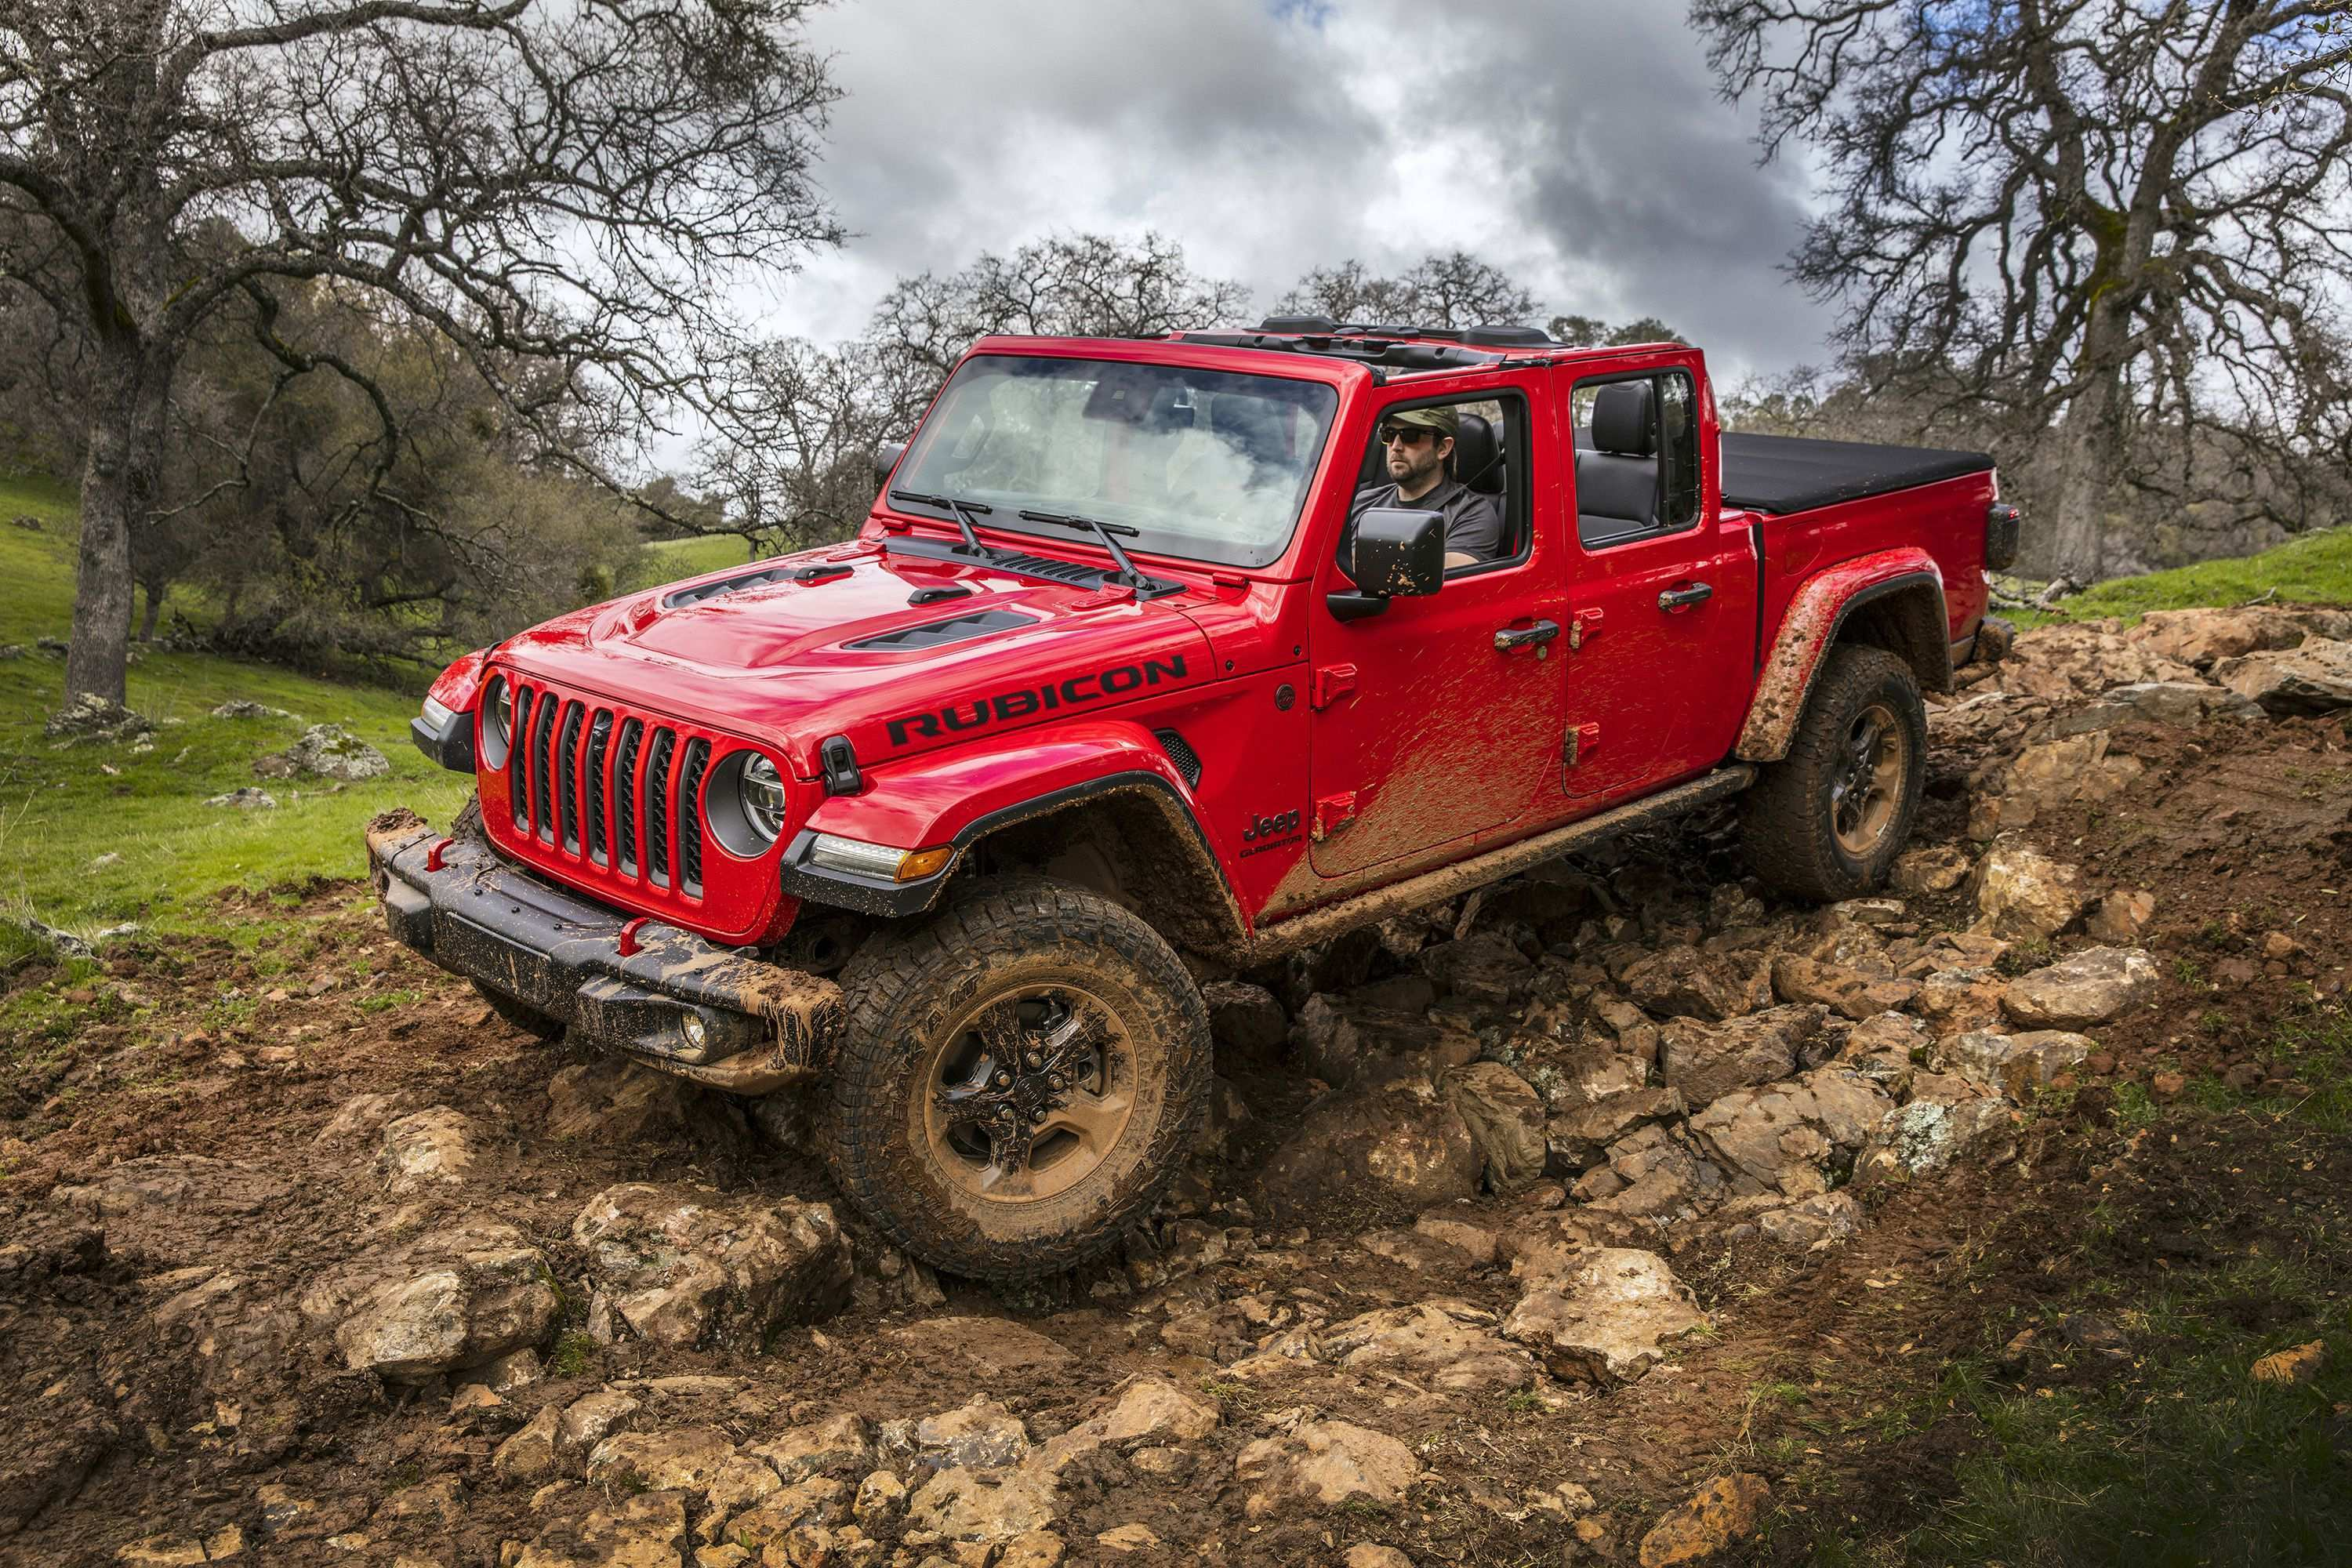 40 New 2020 Jeep Wrangler Rubicon Review